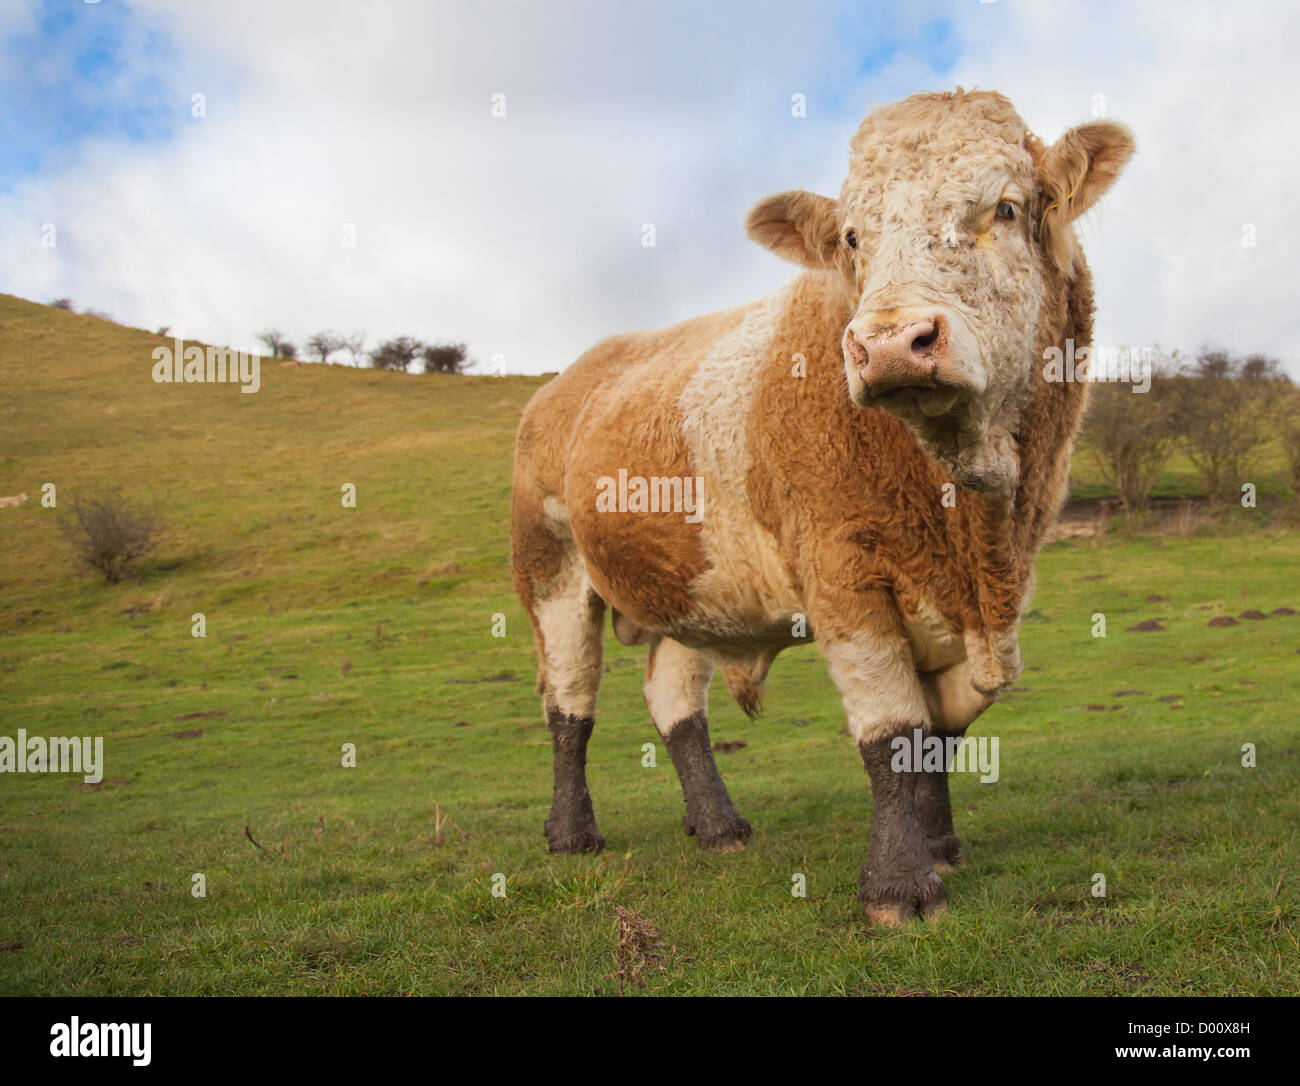 Close up of a Large imposing bull cattle cow - Stock Image